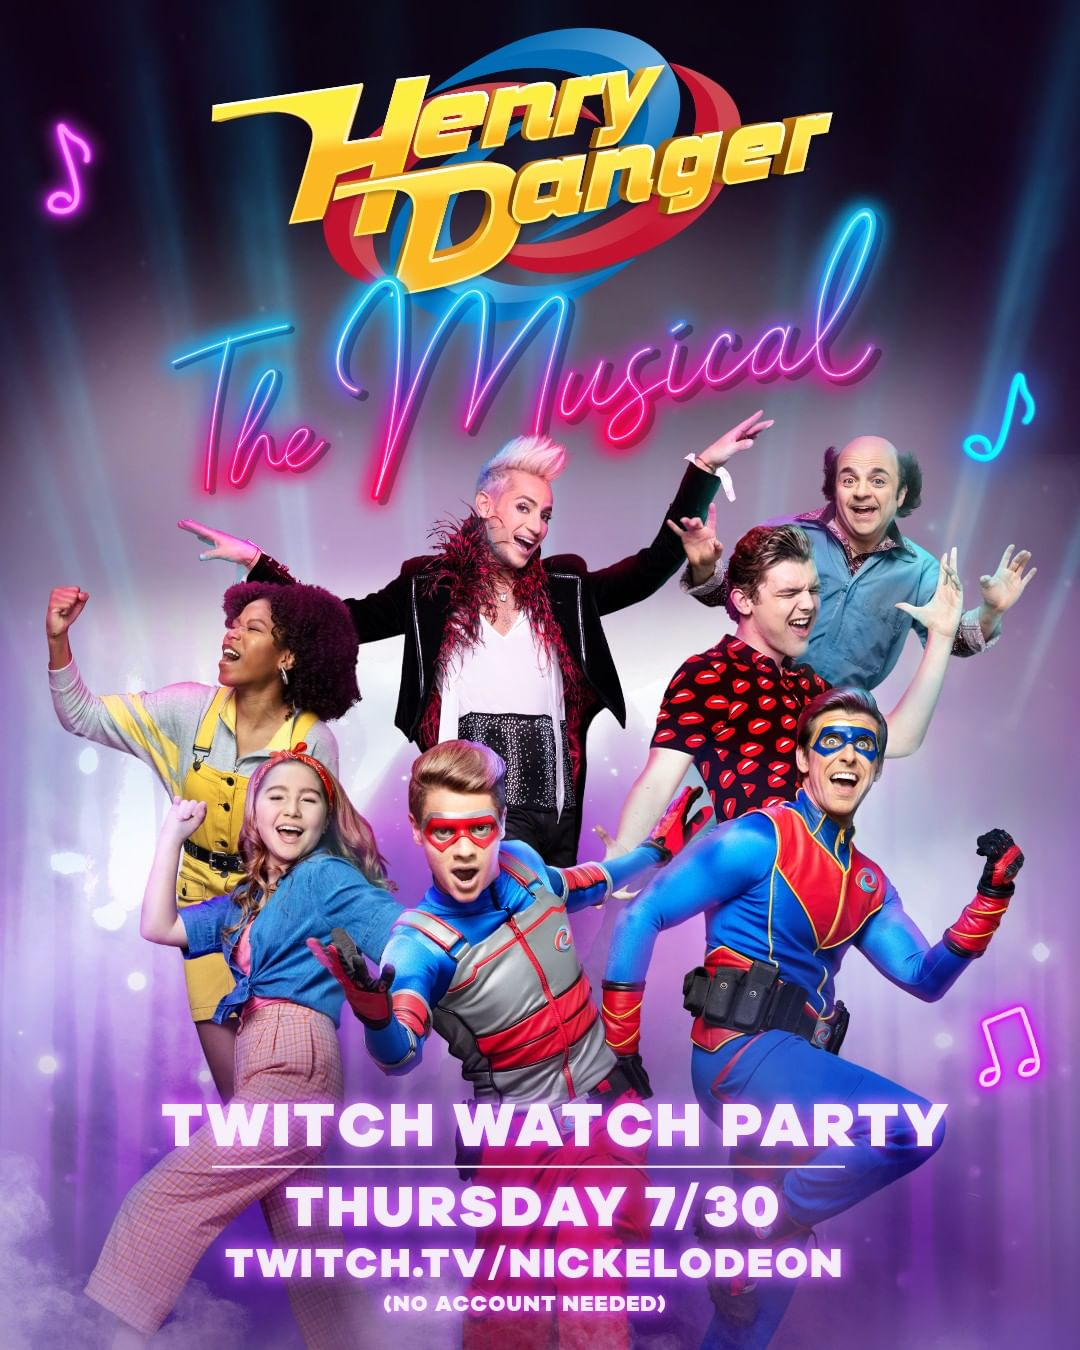 How Many Seasons Are In Henry Danger : seasons, henry, danger, NickALive!:, Nickelodeon, 'Henry, Danger:, Musical', Twitch, Watch, Party, Thursday,